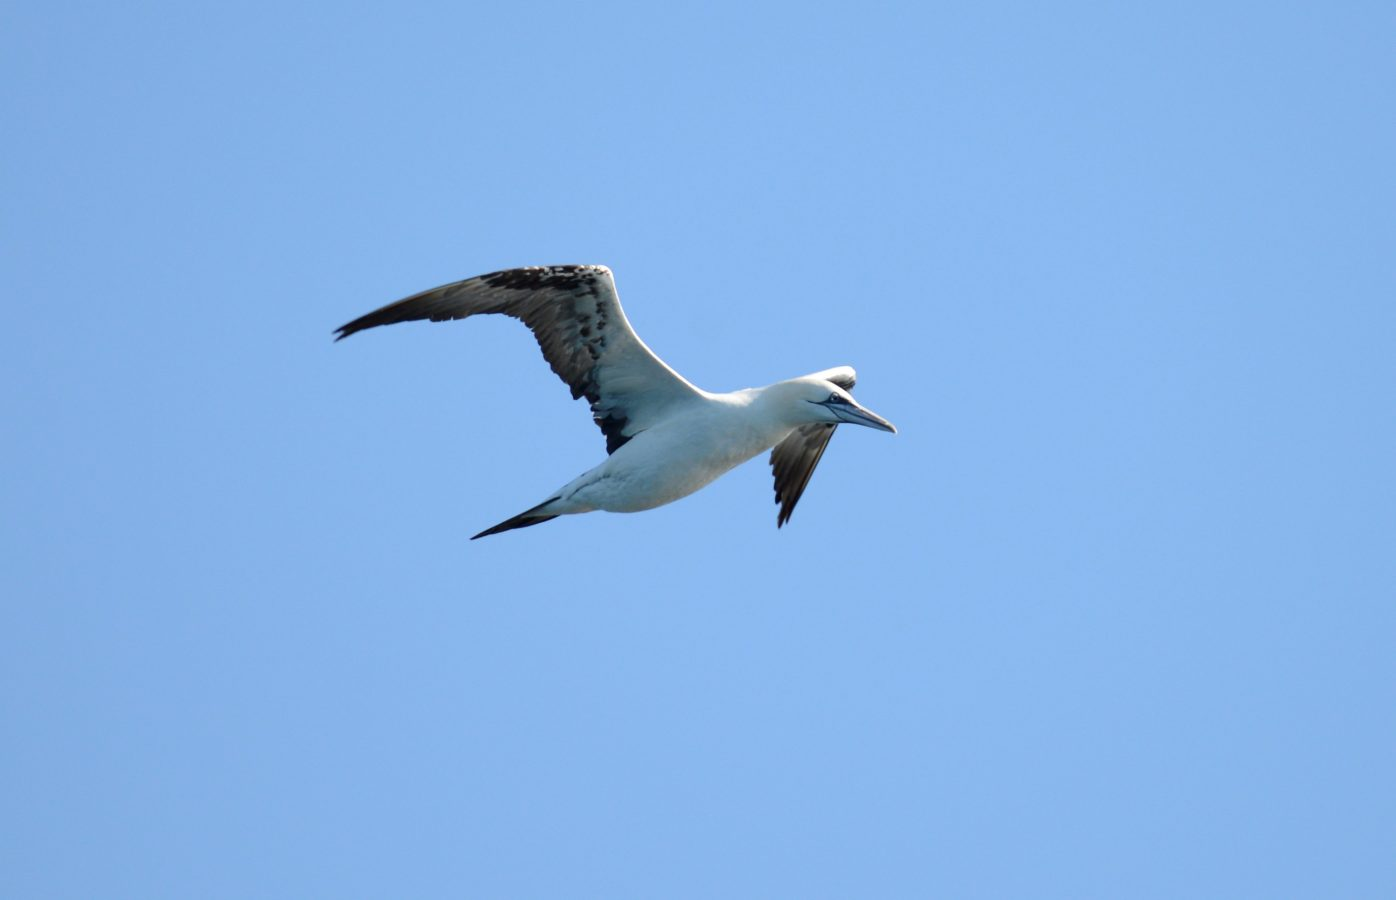 Northern Gannet using an aerial perspective to search for fish.